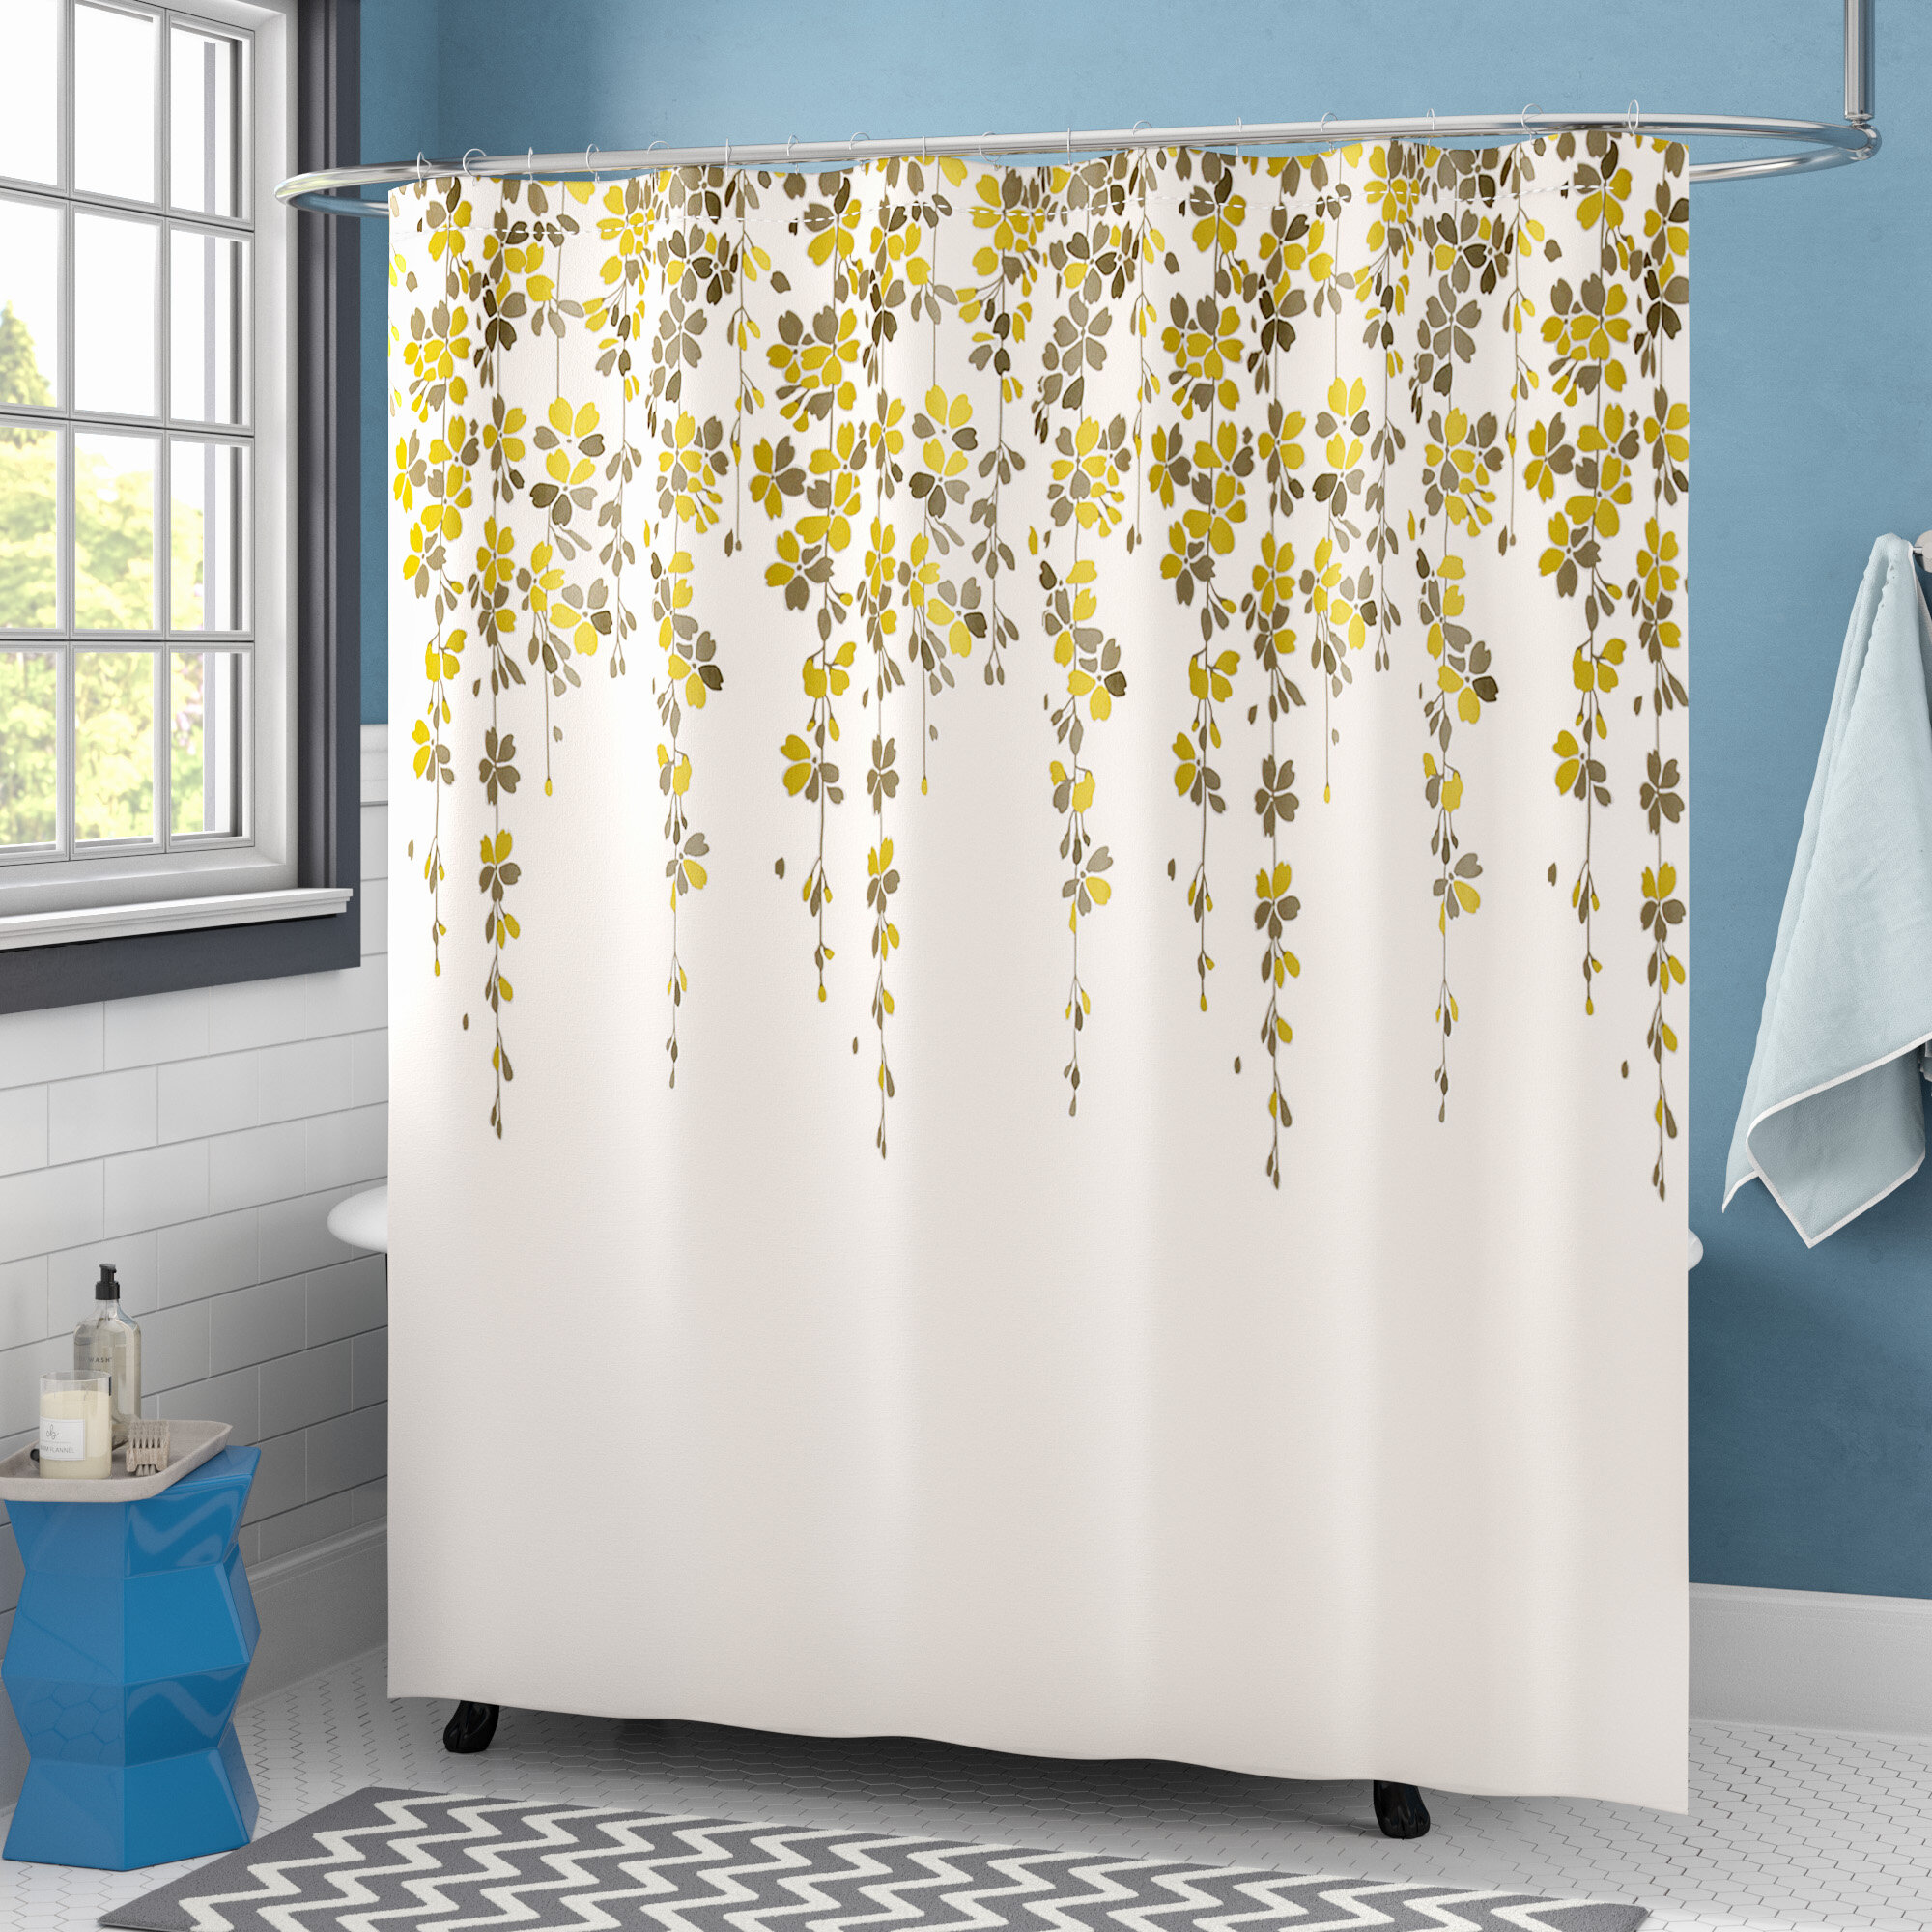 Custom Curtains Valance Roman Shade Shower Curtains in Ivory Leaf Scroll Pattern Fabric